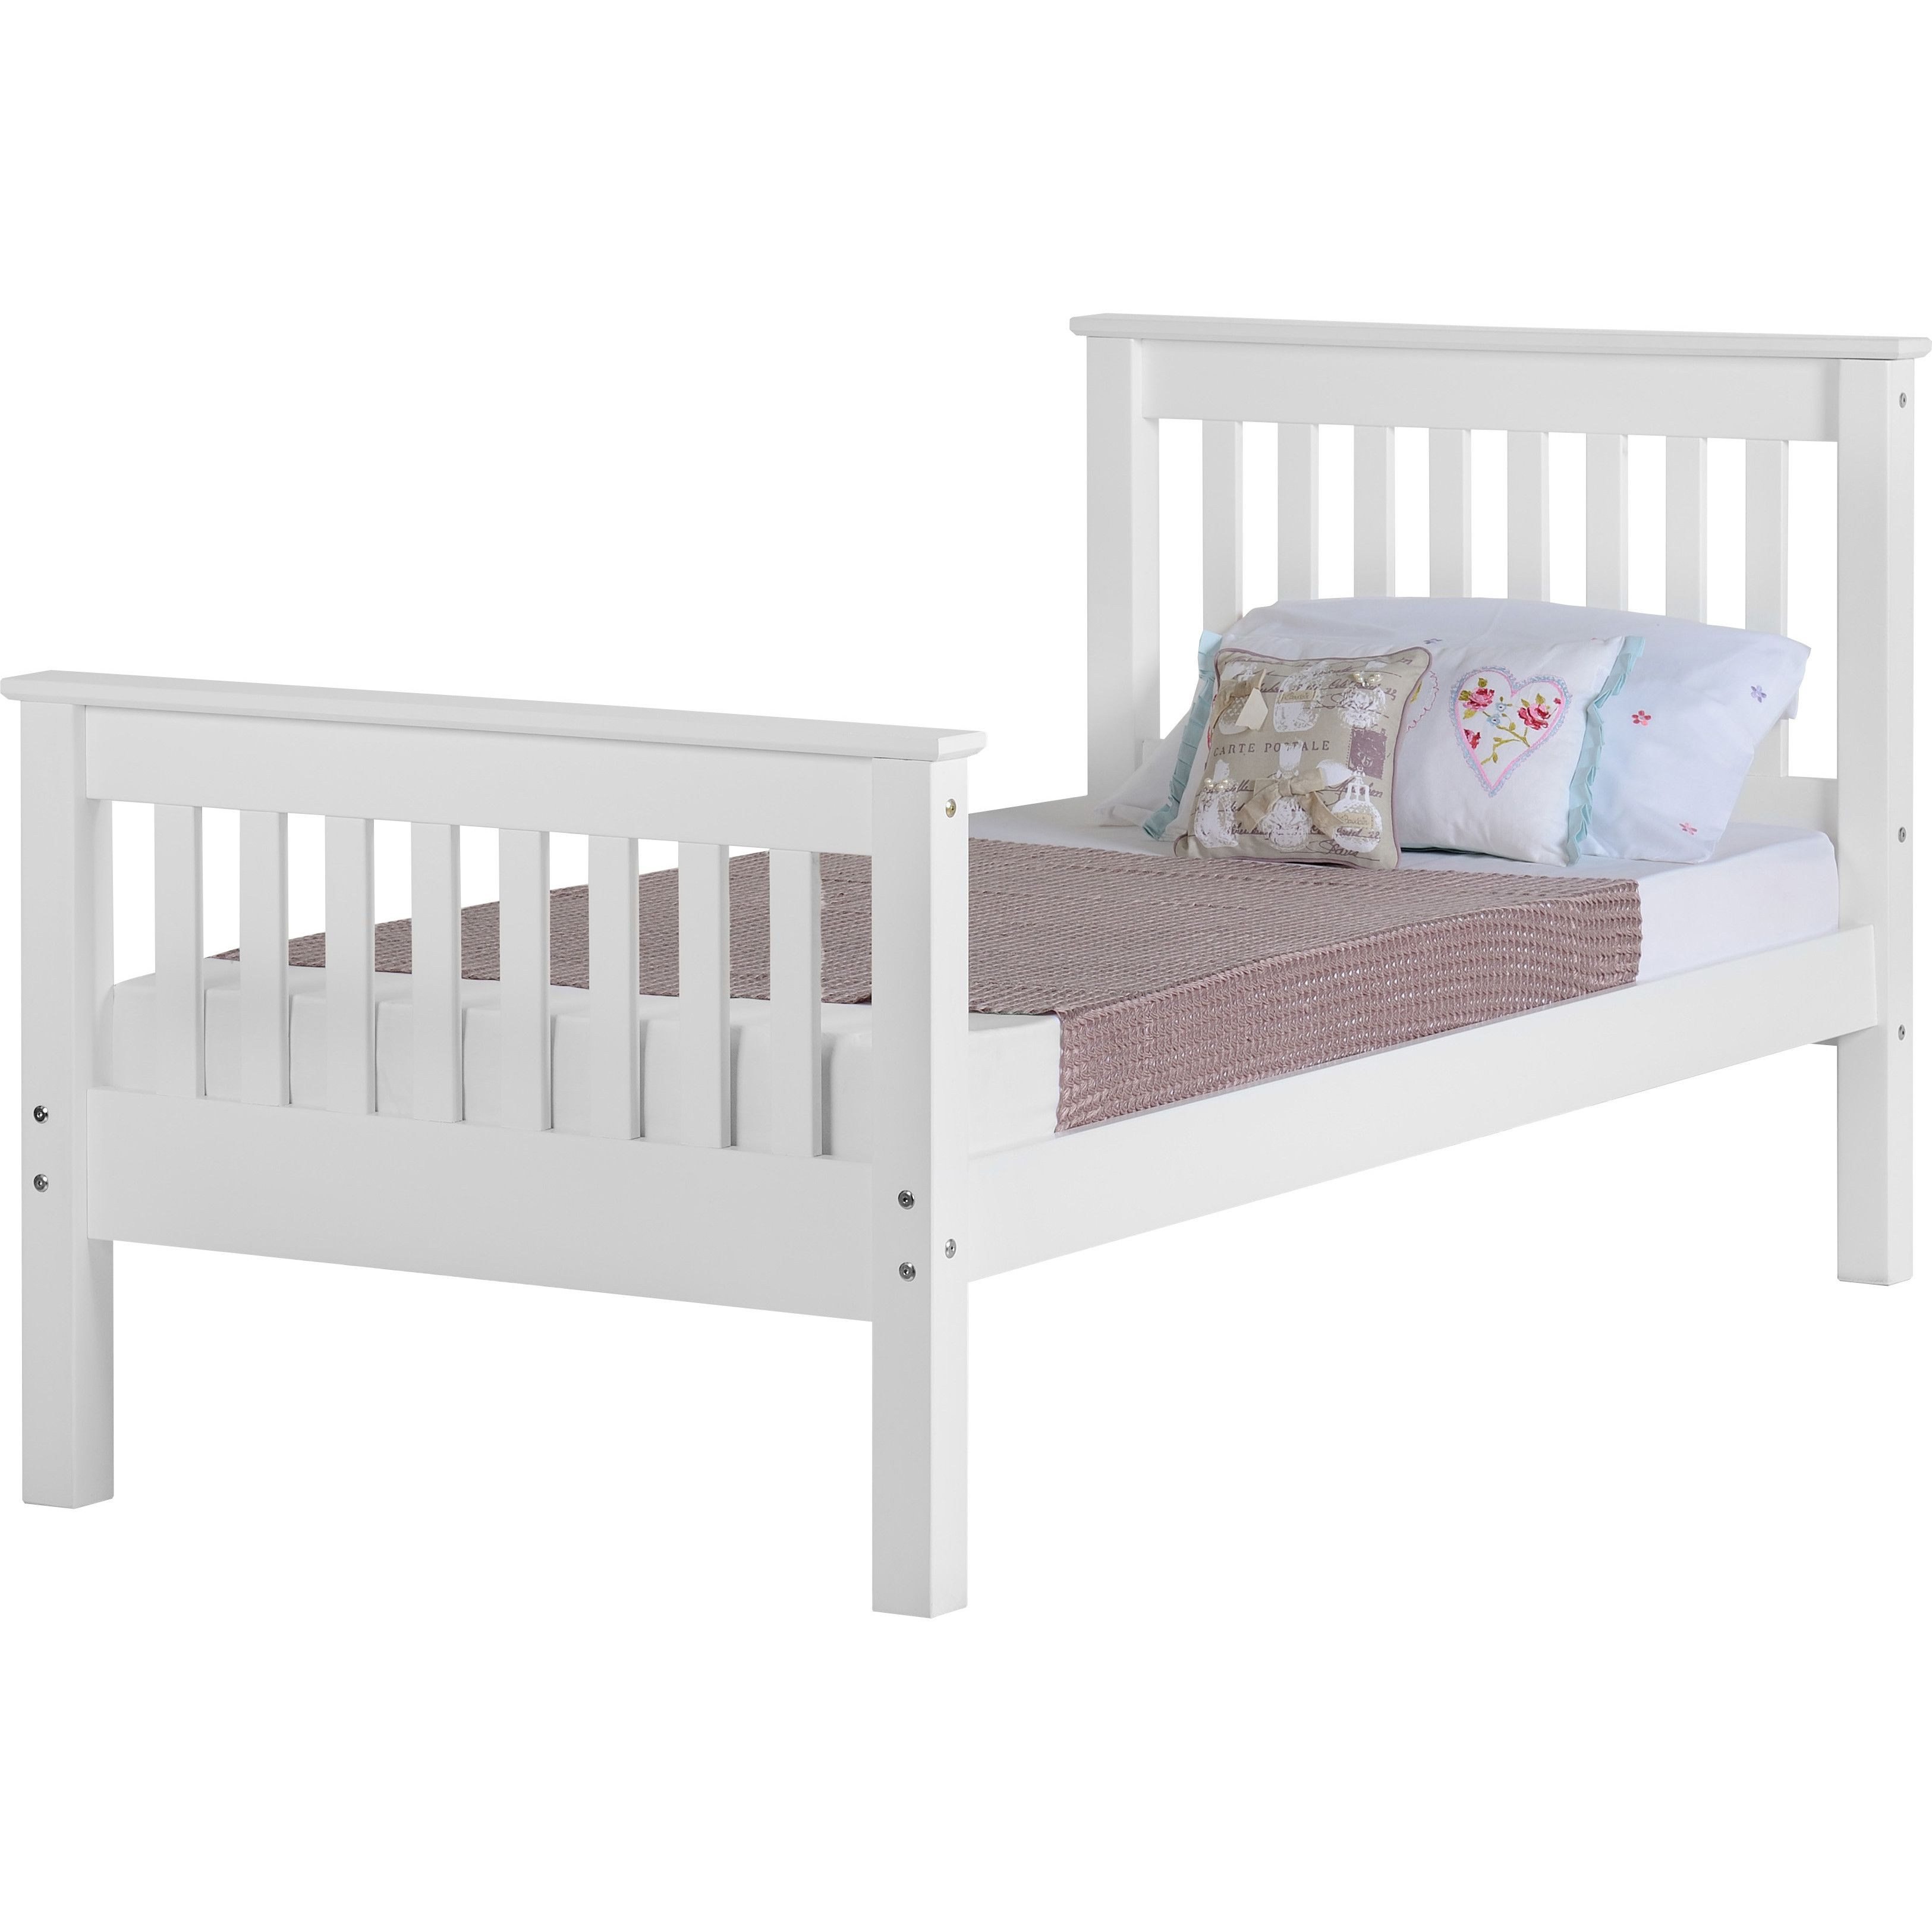 Home u haus bougainville bed frame new room josh pinterest